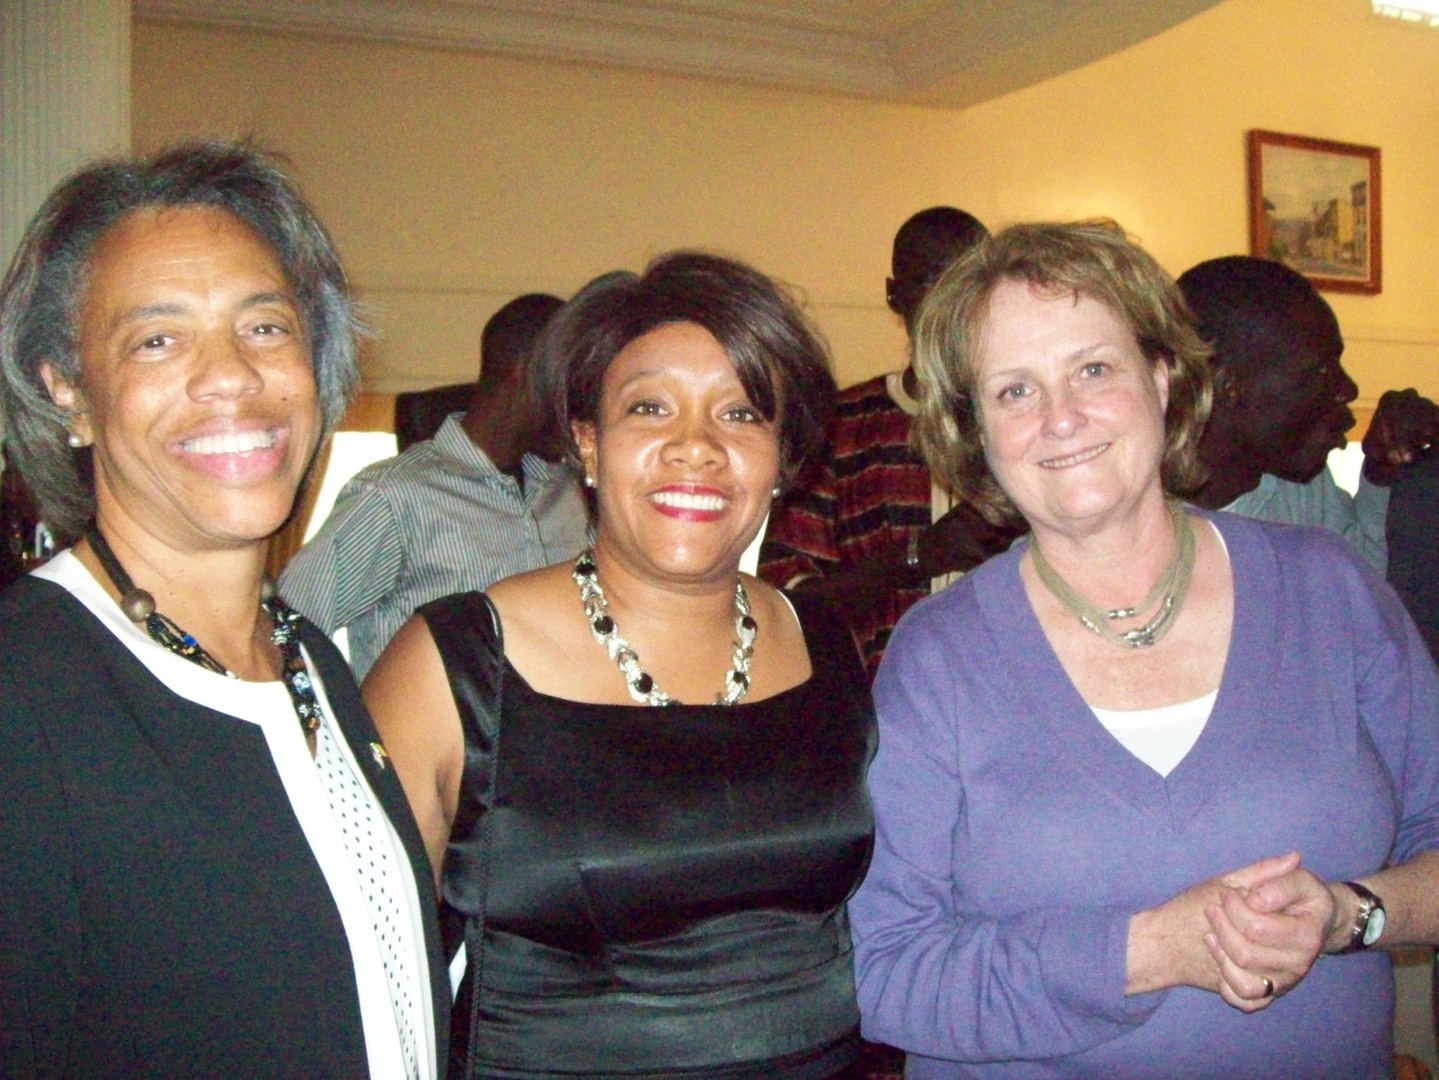 ISE Director, Paullette Diaz-Reed with Under-Secretary Judy McHale (to the right) and U.S. Secretary Marcia Bernicat, (presently the U.S. Ambassador to Bangladesh).